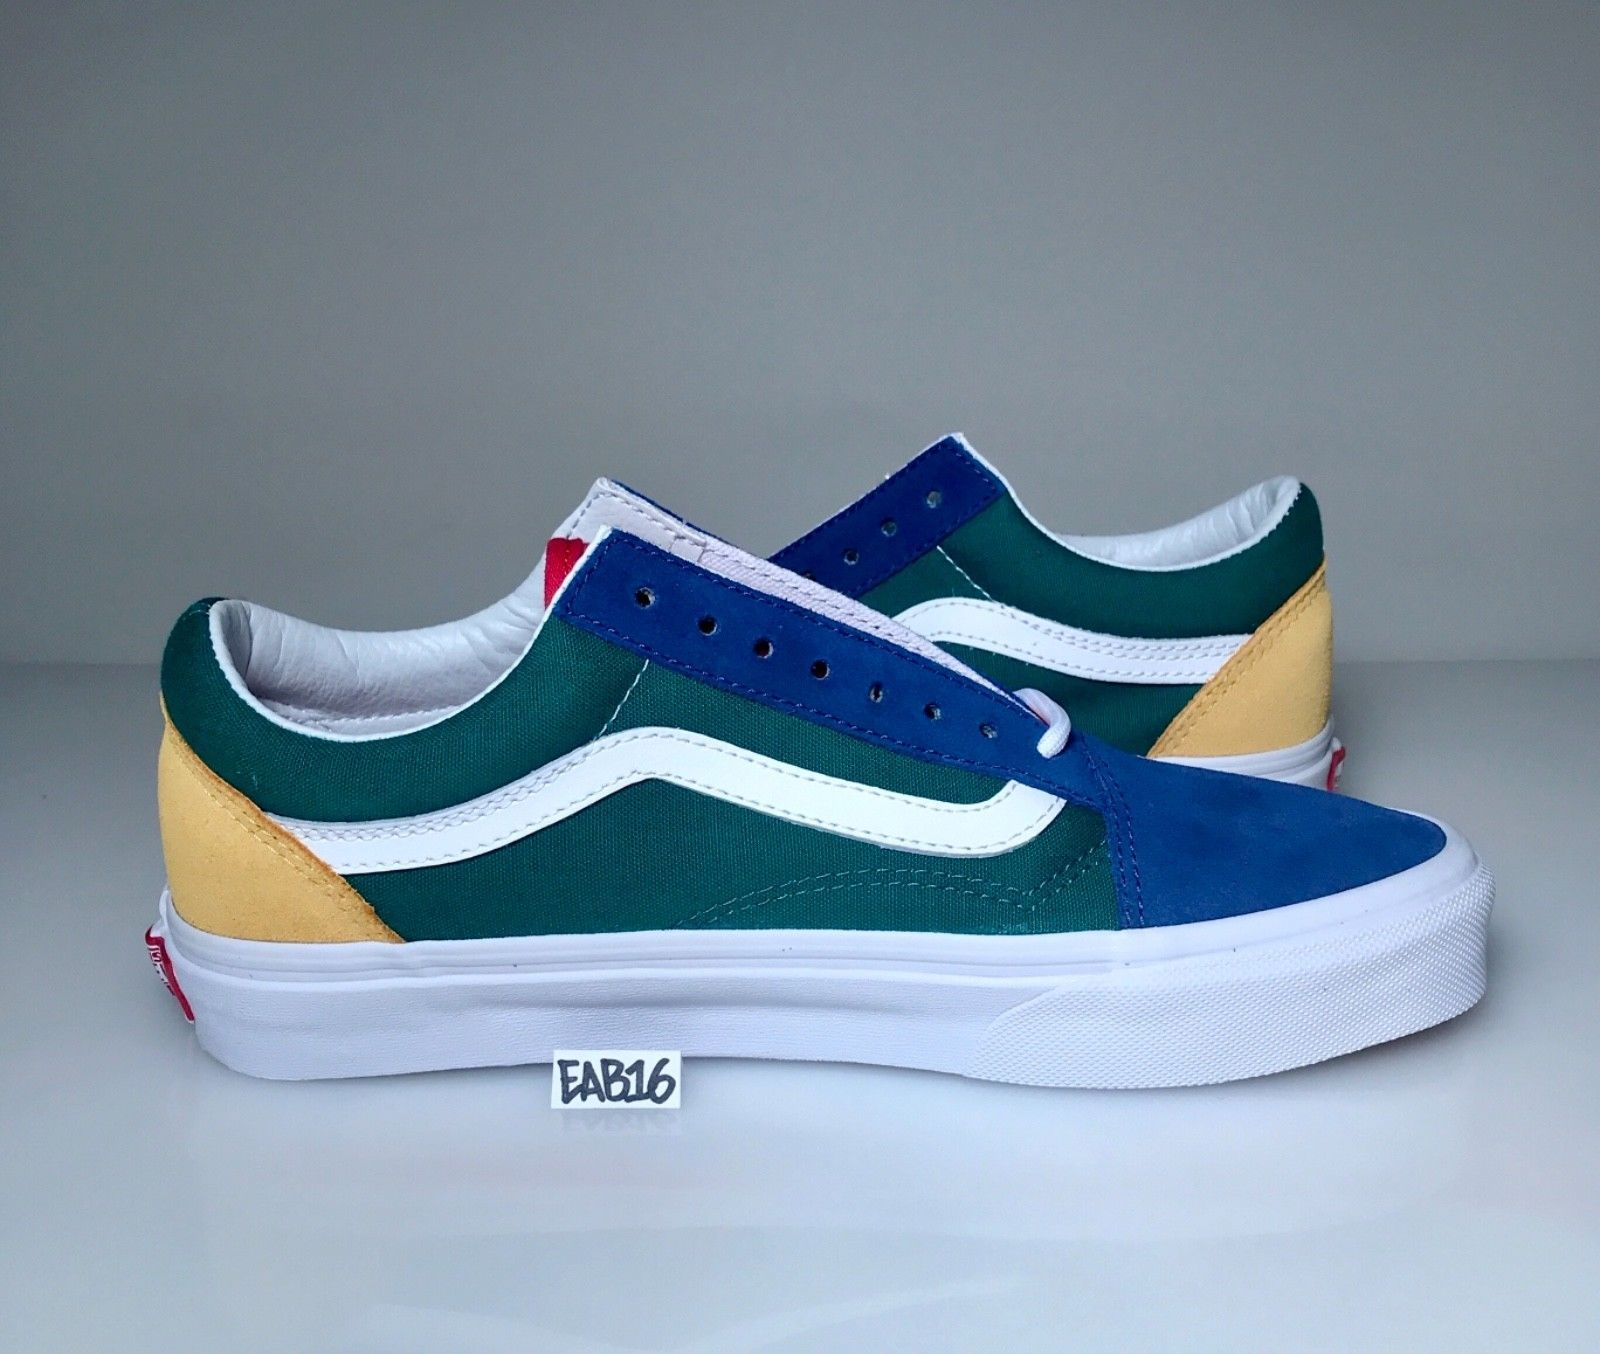 0551896eb6da87 Vans Old Skool Yacht Club Yellow Blue Green and Red Colorblocked Color  Blocked